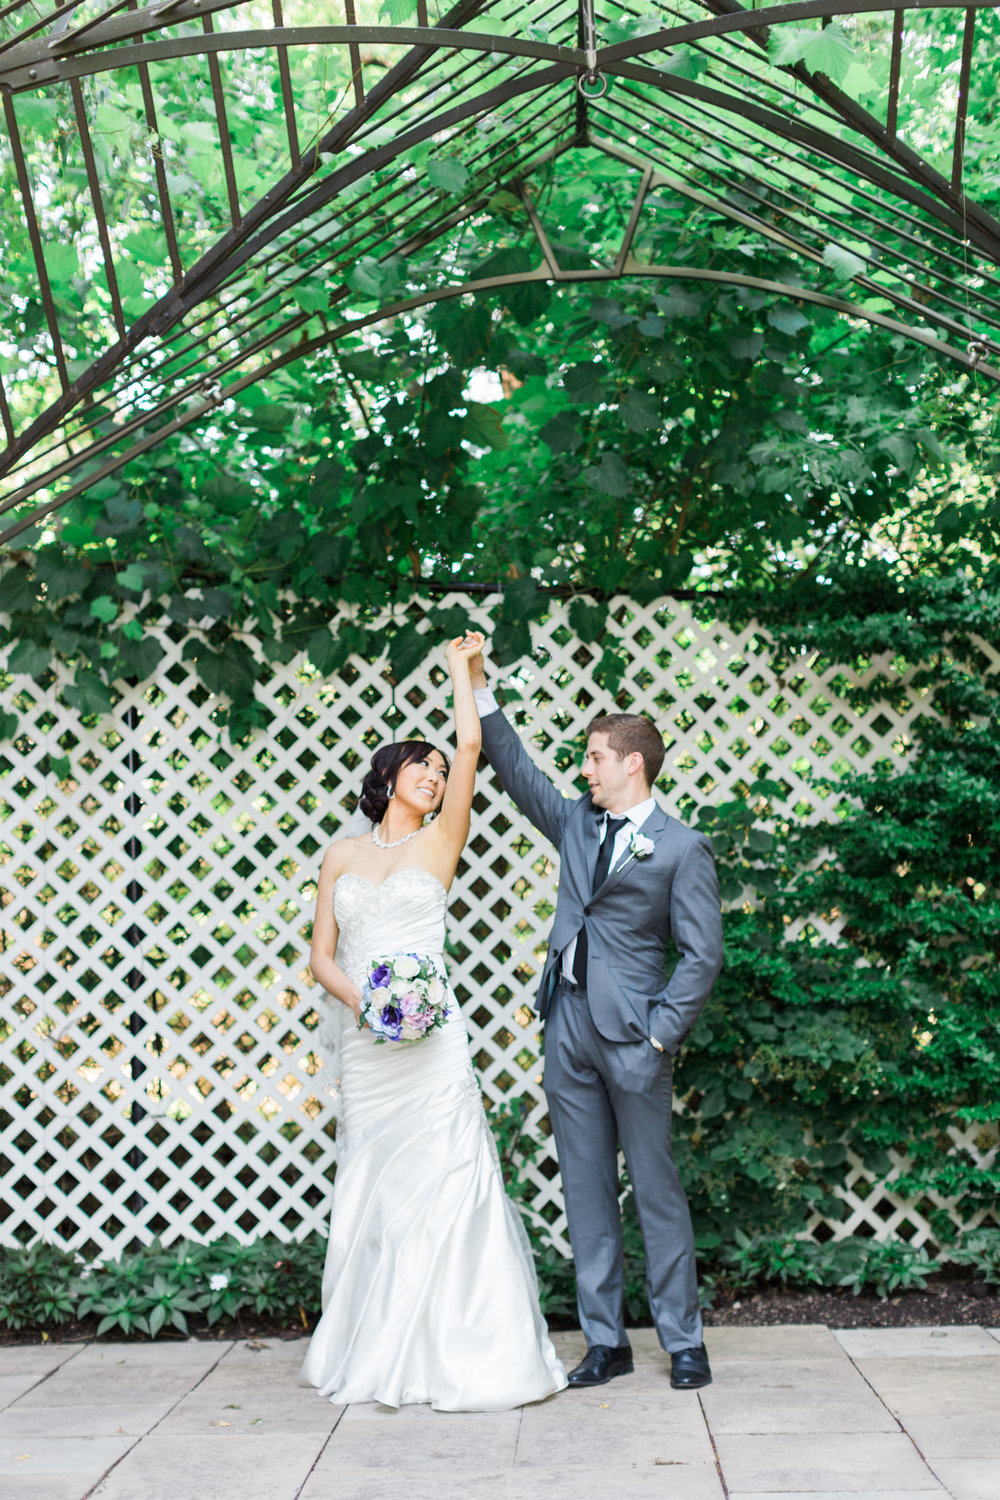 Toronto Fine Art Photographer - Old Mill Wedding - Bride & Groom Photos-8.jpg